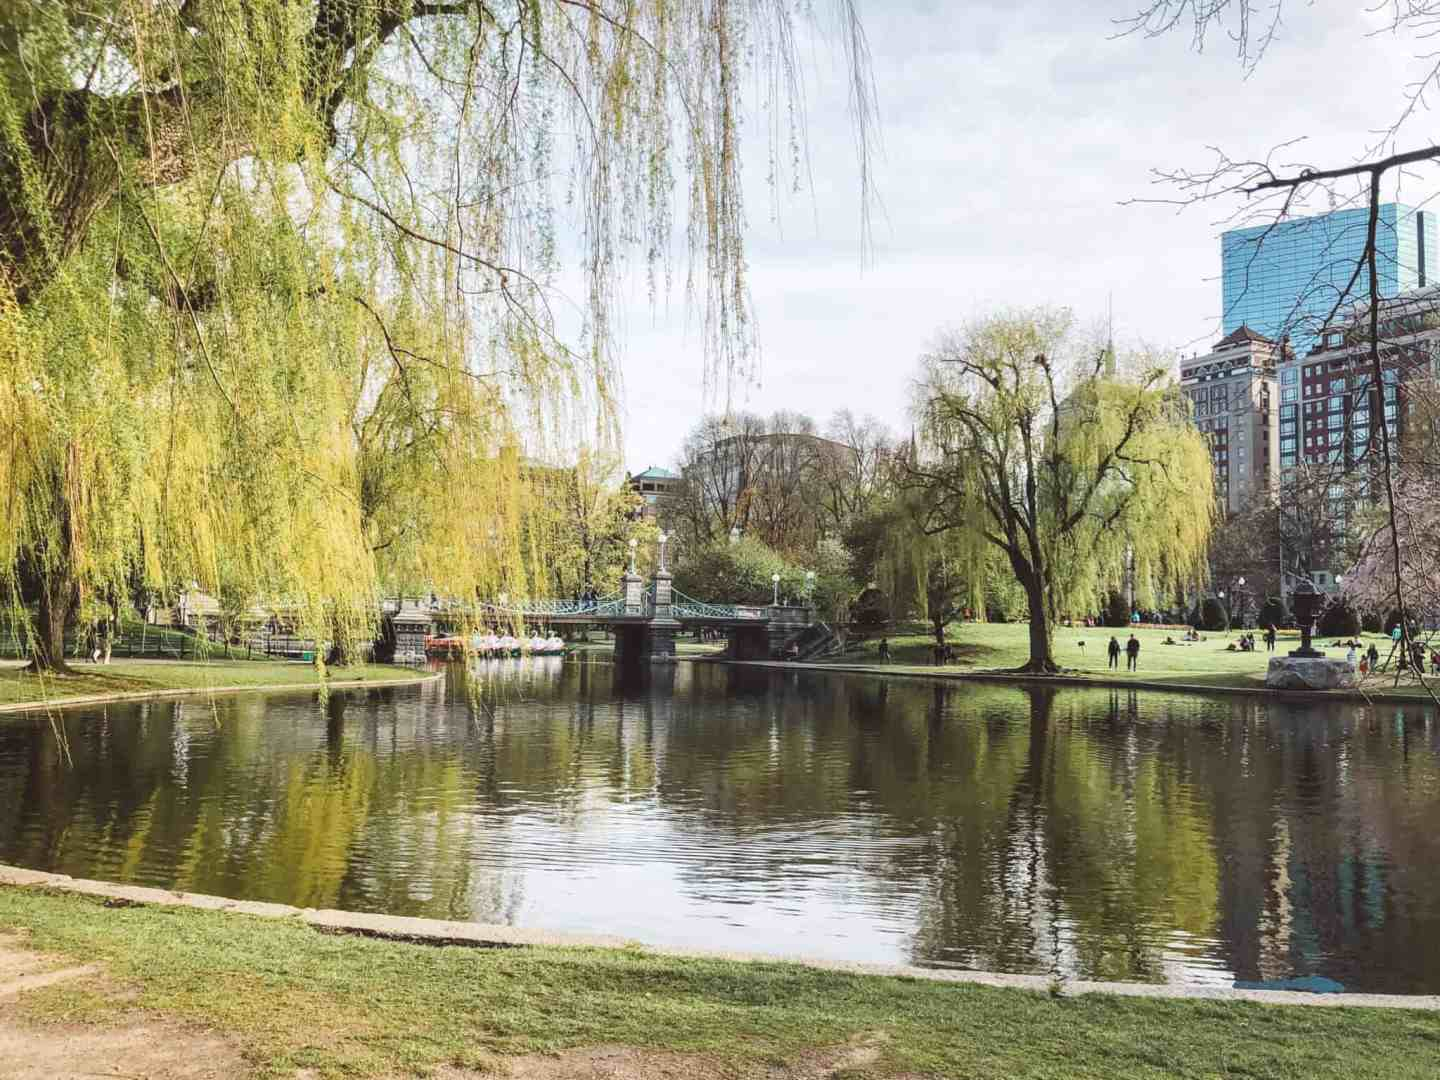 Top 10 Things to Do in Boston - Boston Public Garden